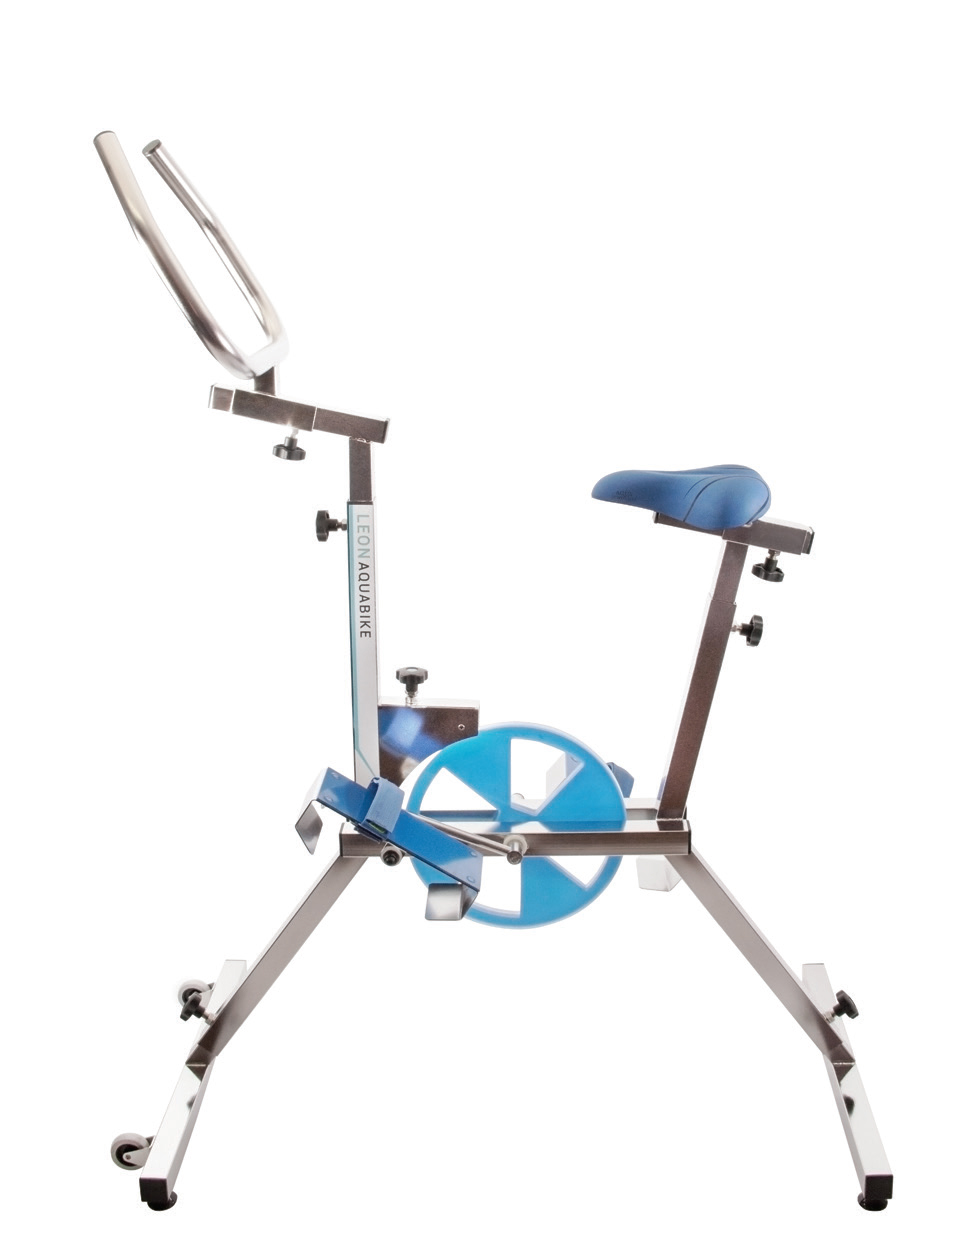 Rower aqua fitness Leon EXCLUSIVE